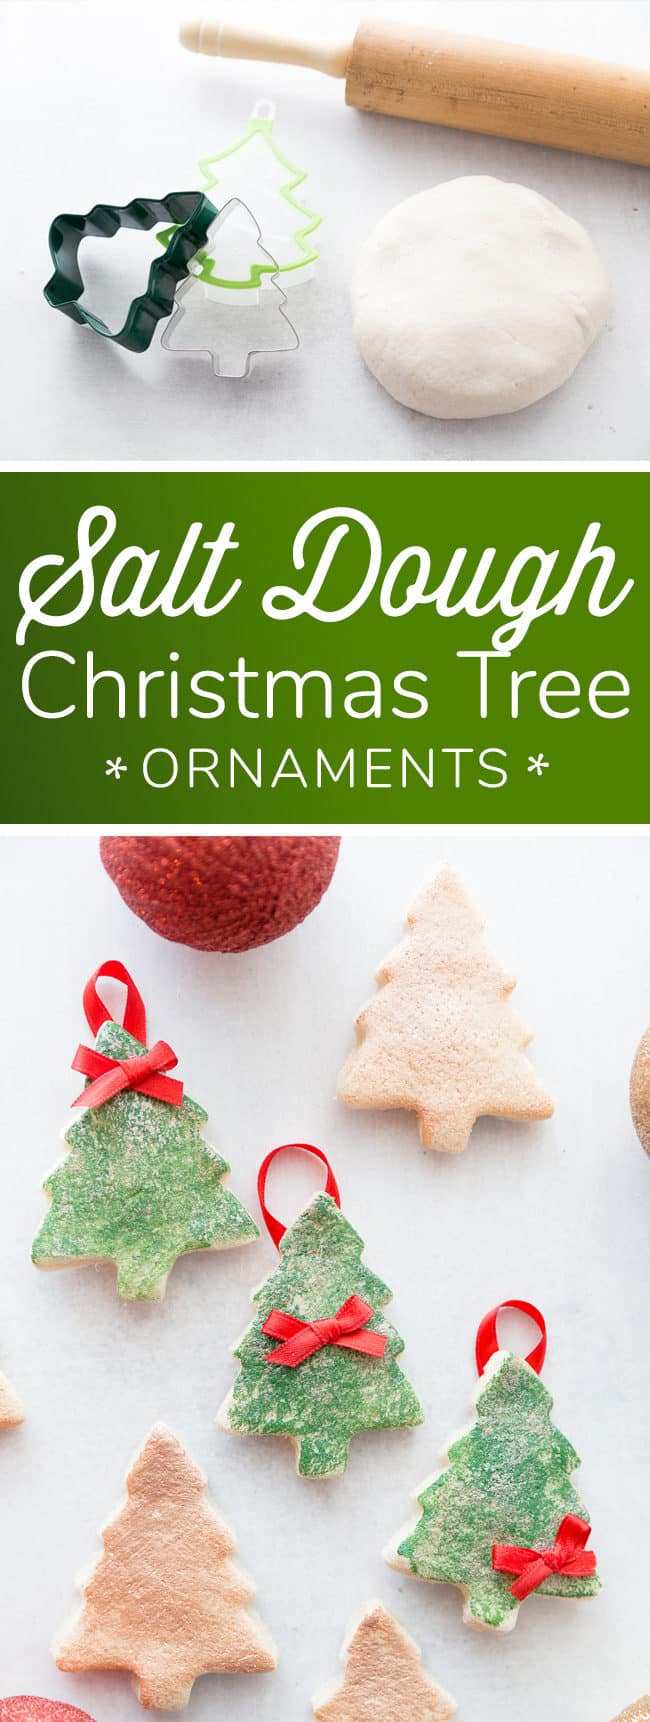 DIY Salt Dough Christmas Tree Ornament - easy and cute holiday ornaments - great for kids!